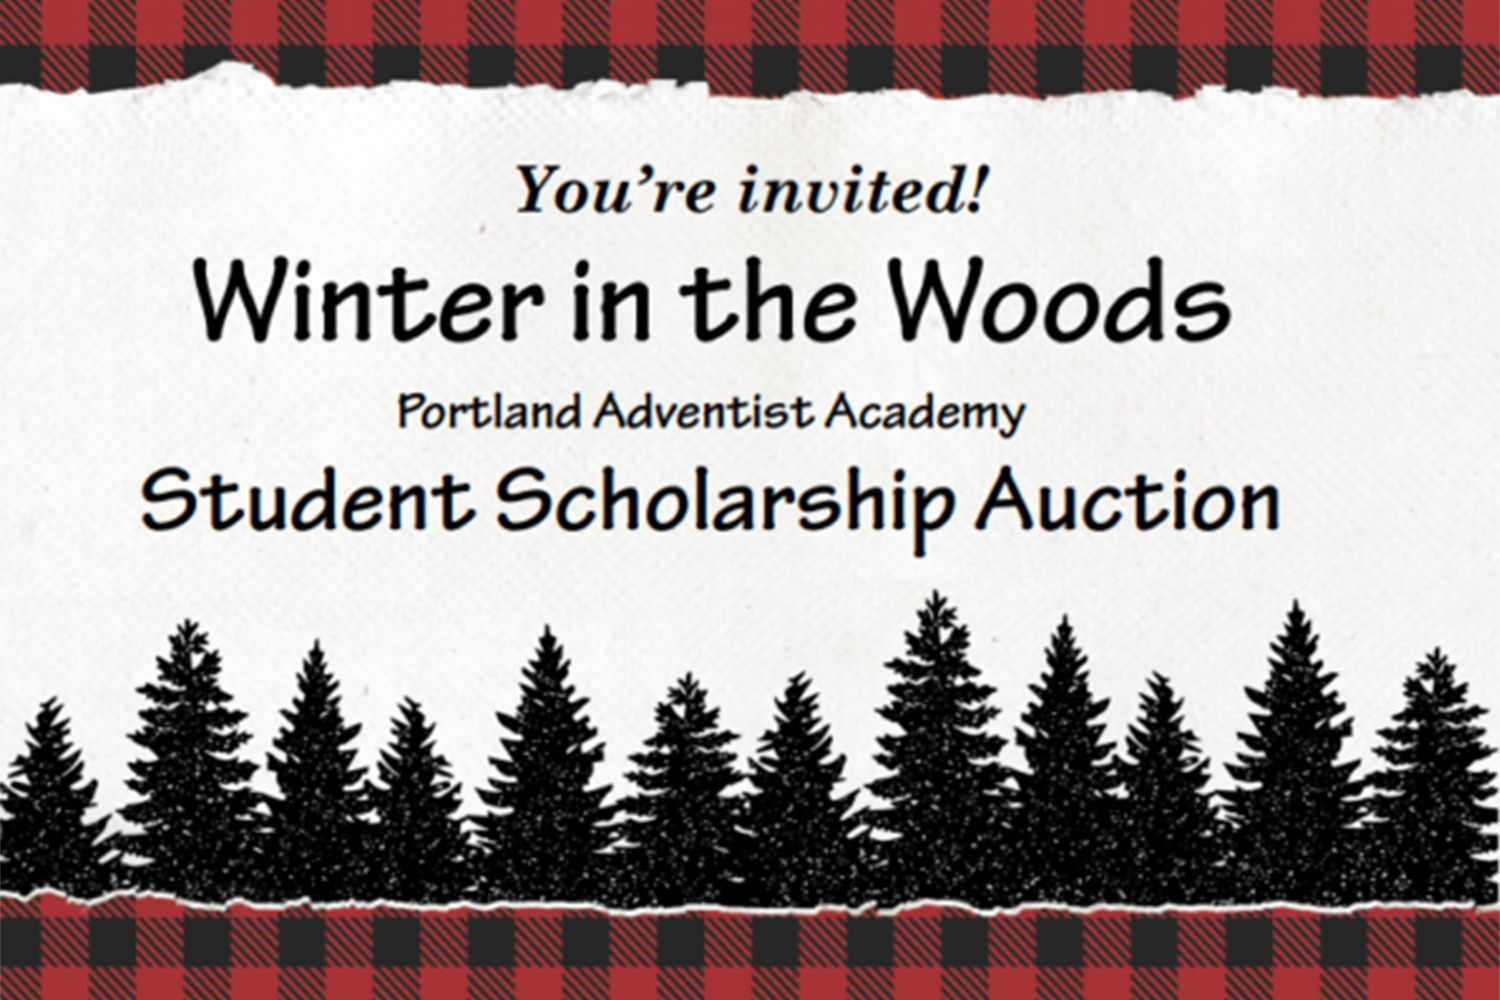 PAA Student Scholarship Auction